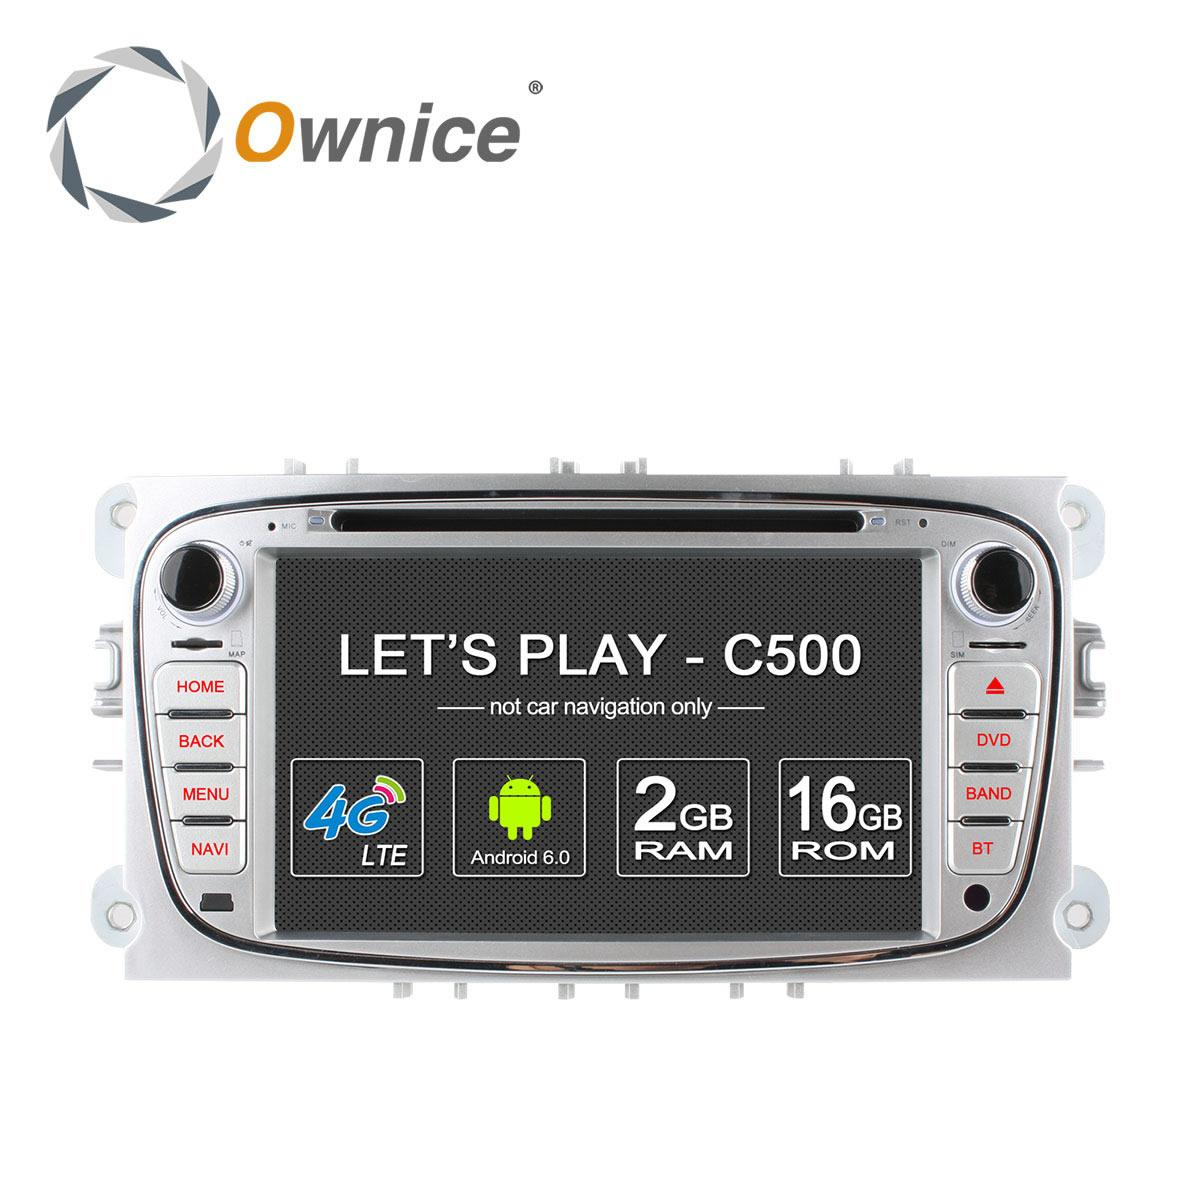 Ownice C500 4g Lte Android 6.0 Quad Octa Core 2 Din Car Dvd Player ...